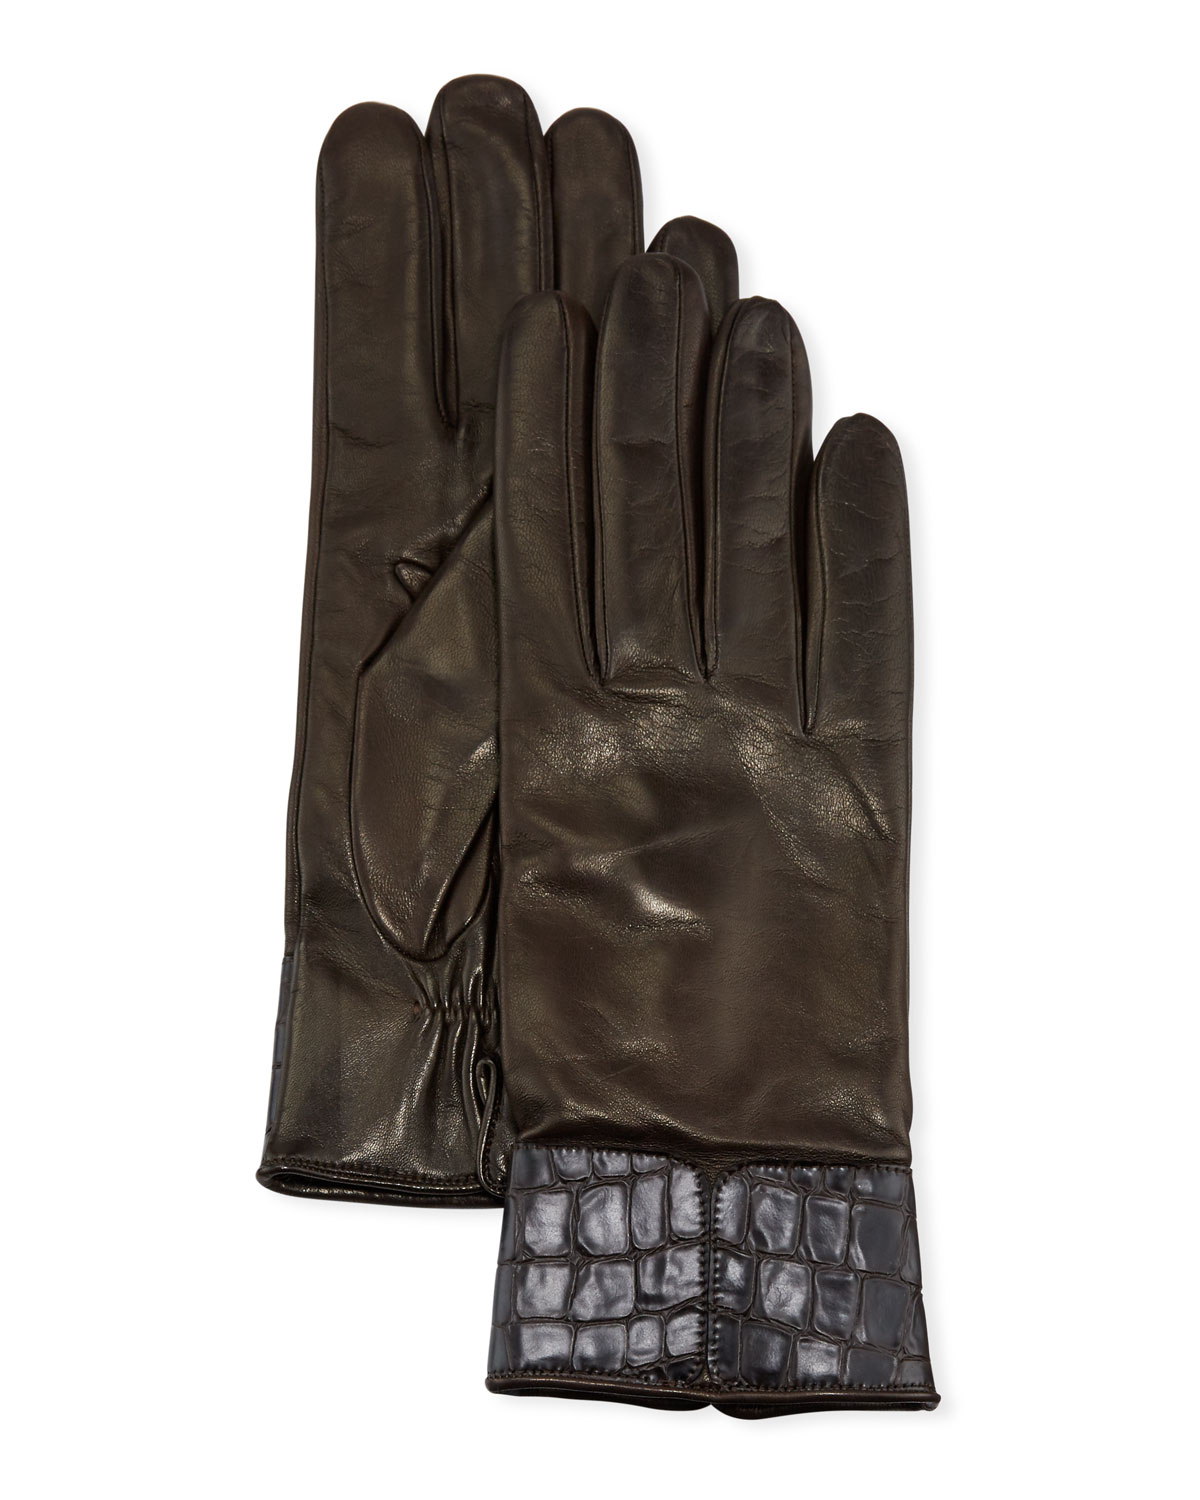 Portolano Gloves CASHMERE-LINED NAPA LEATHER GLOVES W/ CROC EMBOSSED CUFFS